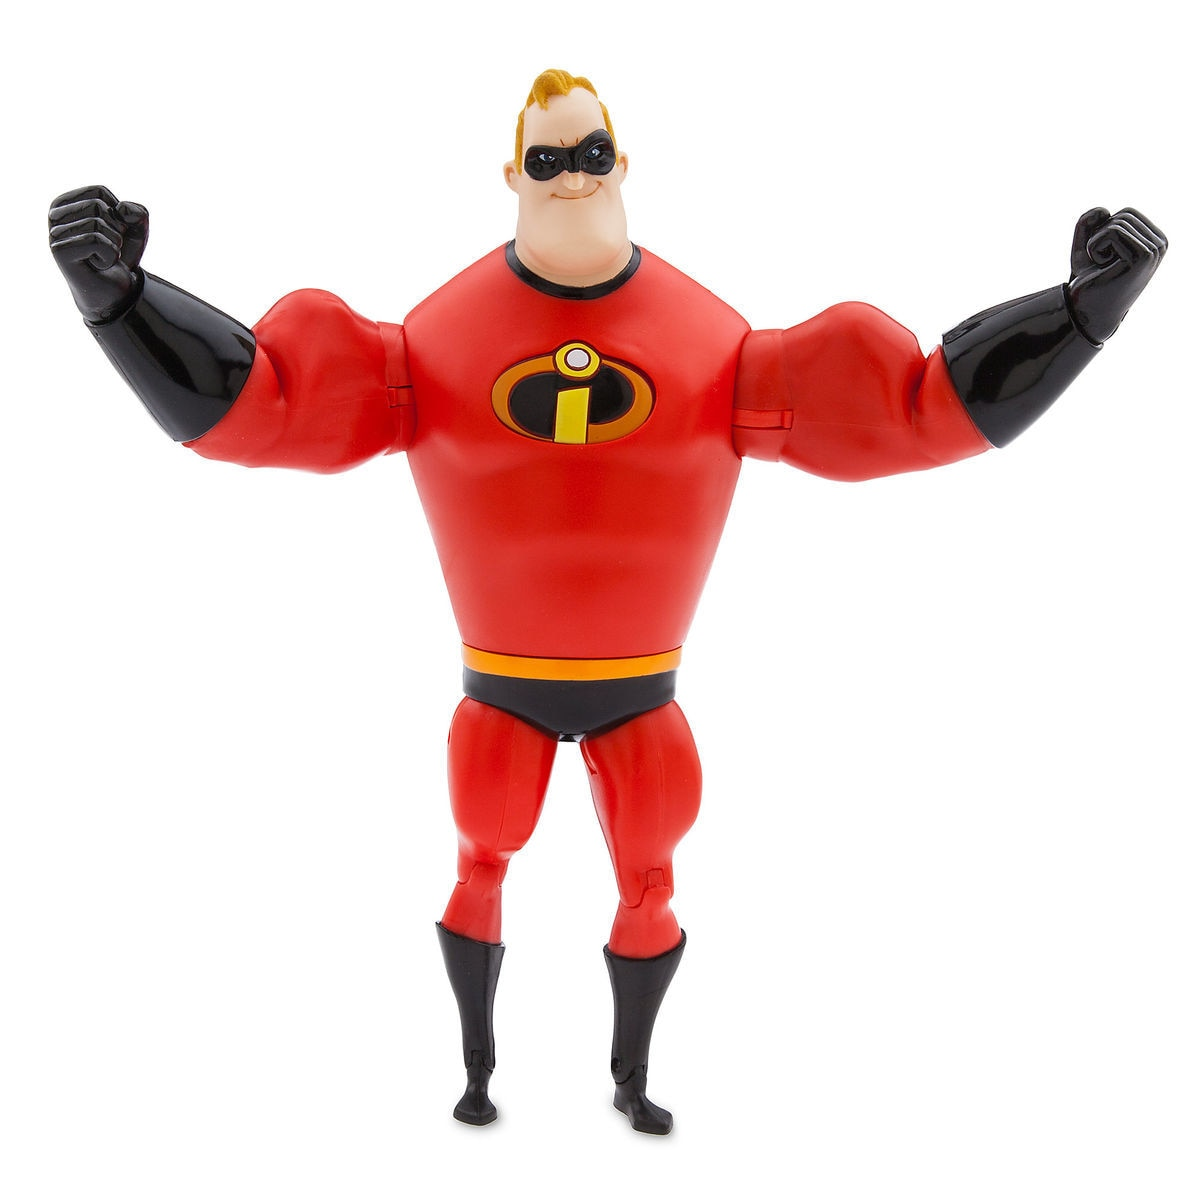 mr incredible light up talking action figure incredibles 2